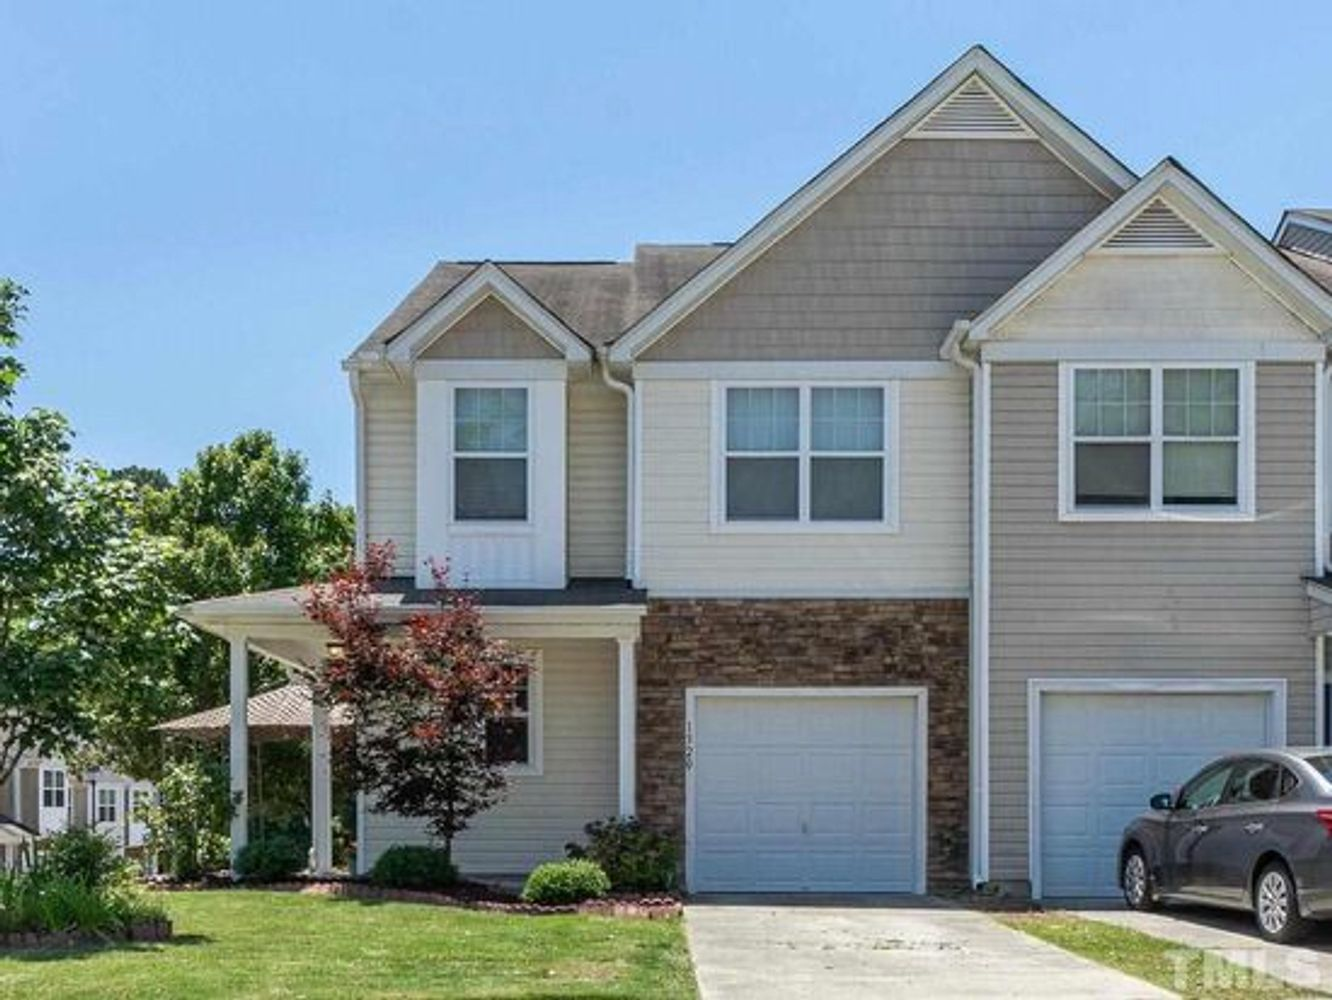 1320 Stone Manor Dr, Raleigh 27610 on Alcove